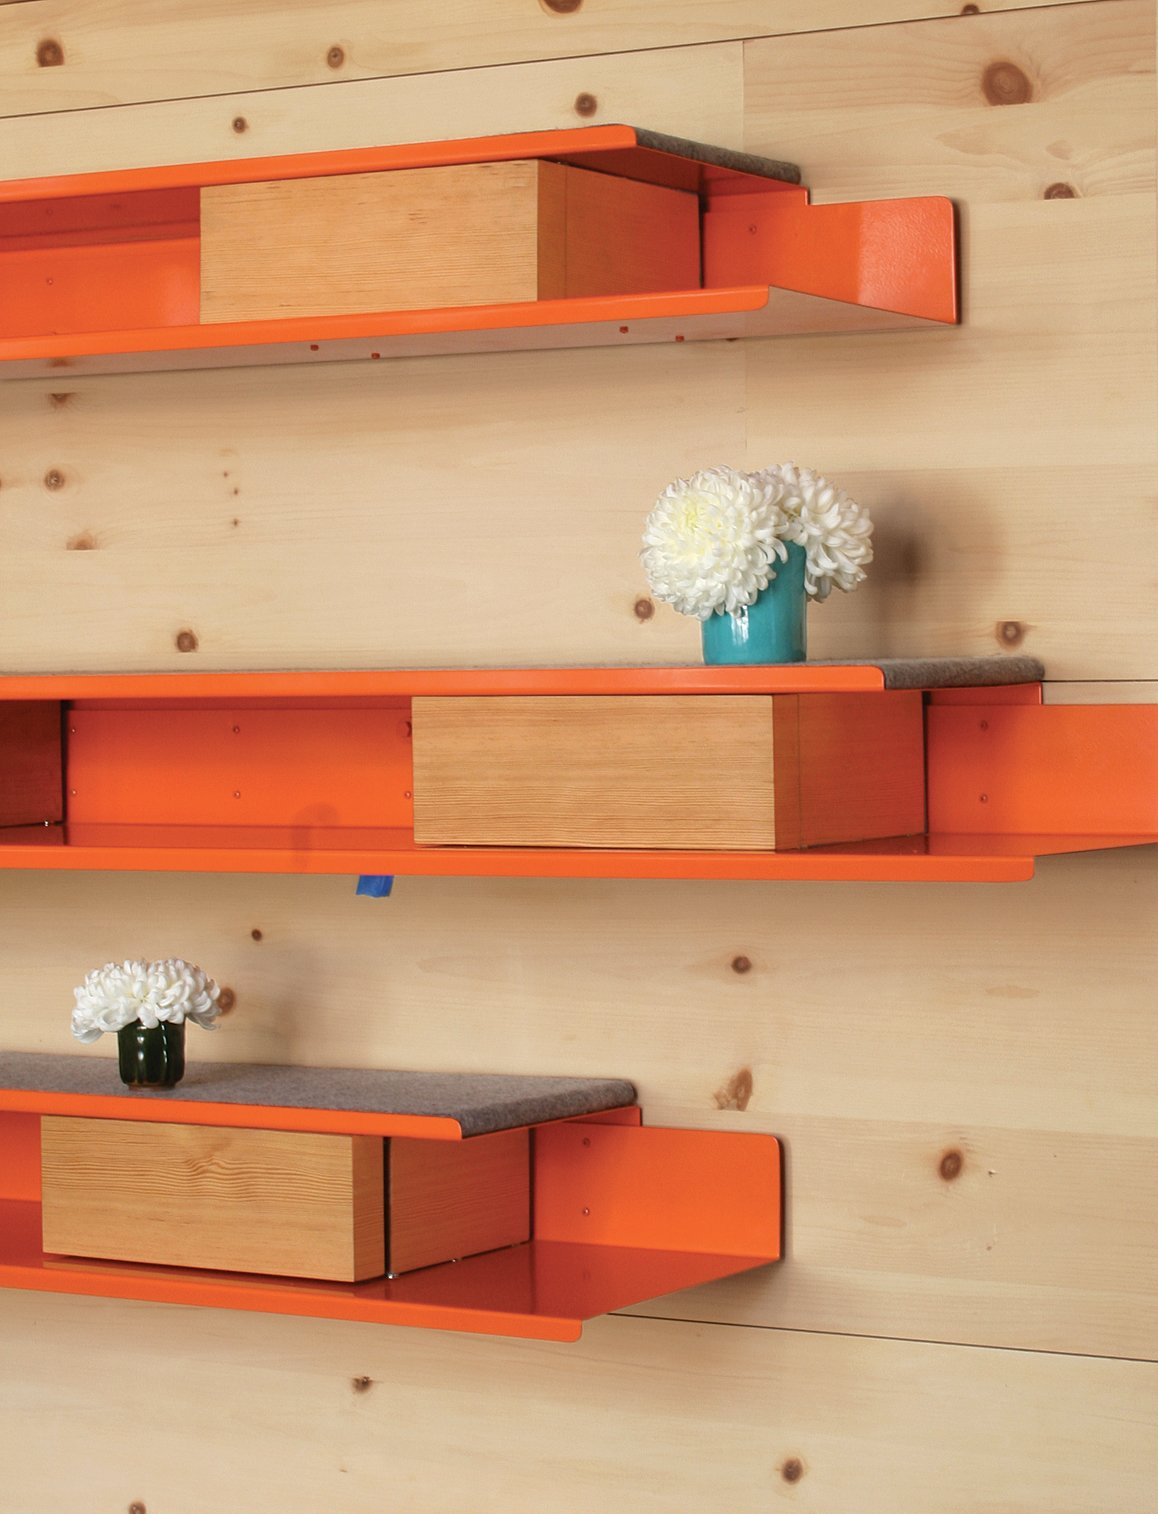 Robertson designed the orange powder-coated-steel shelves and storage units that line the knotty-pine walls.  Courtyard House by David A. Greene